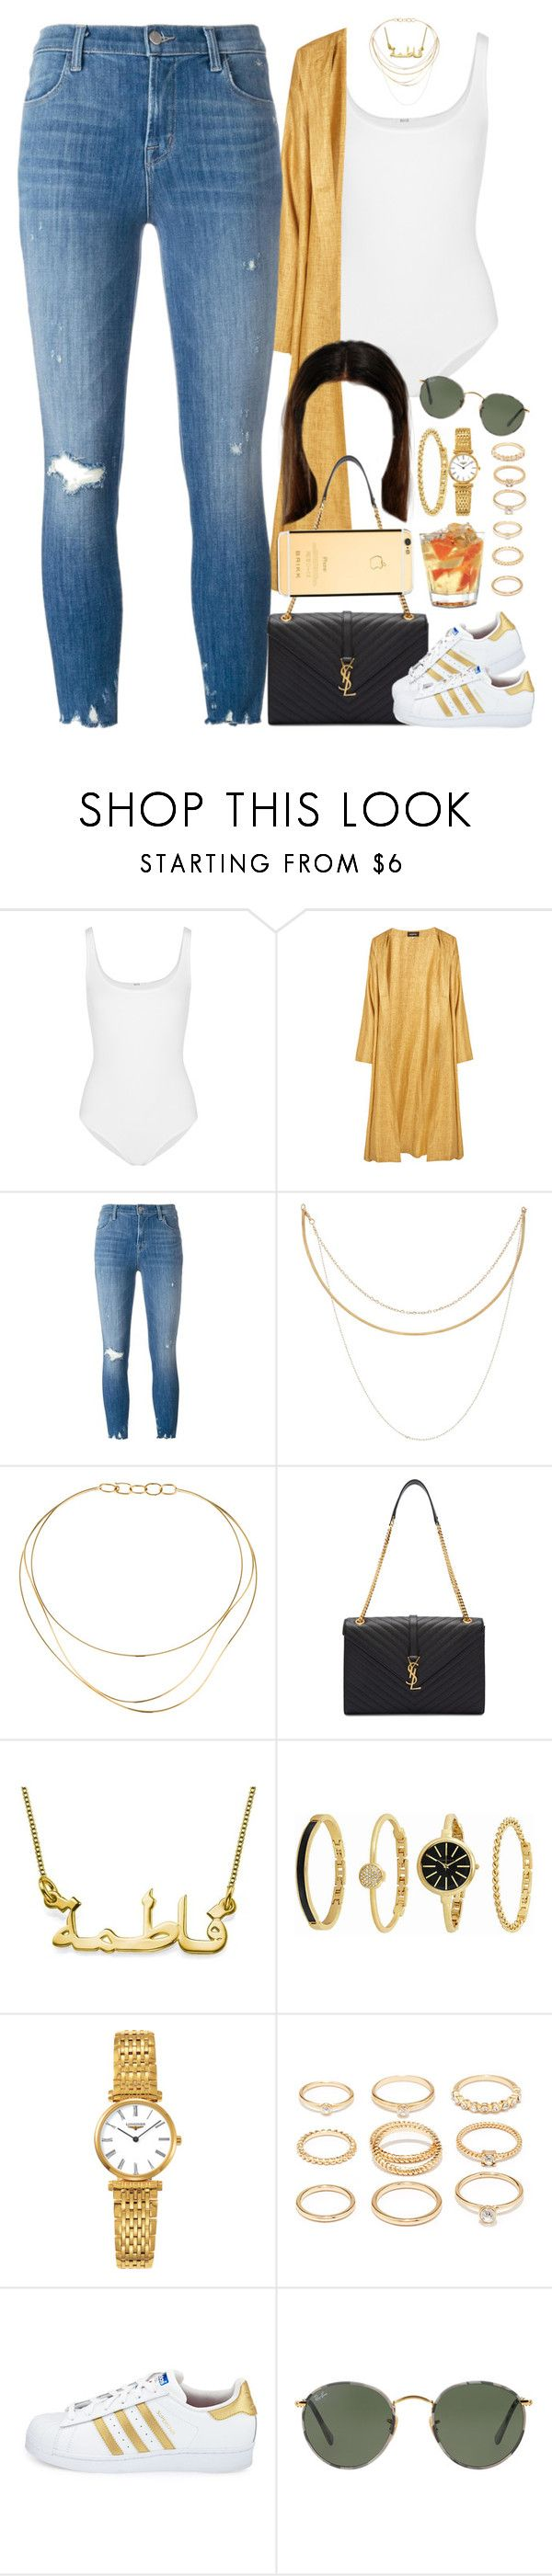 """""""21 December, 2016"""" by jamilah-rochon ❤ liked on Polyvore featuring Wolford, Eskandar, J Brand, Afin Atelier, Tiffany & Co., Yves Saint Laurent, Anne Klein, Forever 21, adidas and Ray-Ban"""